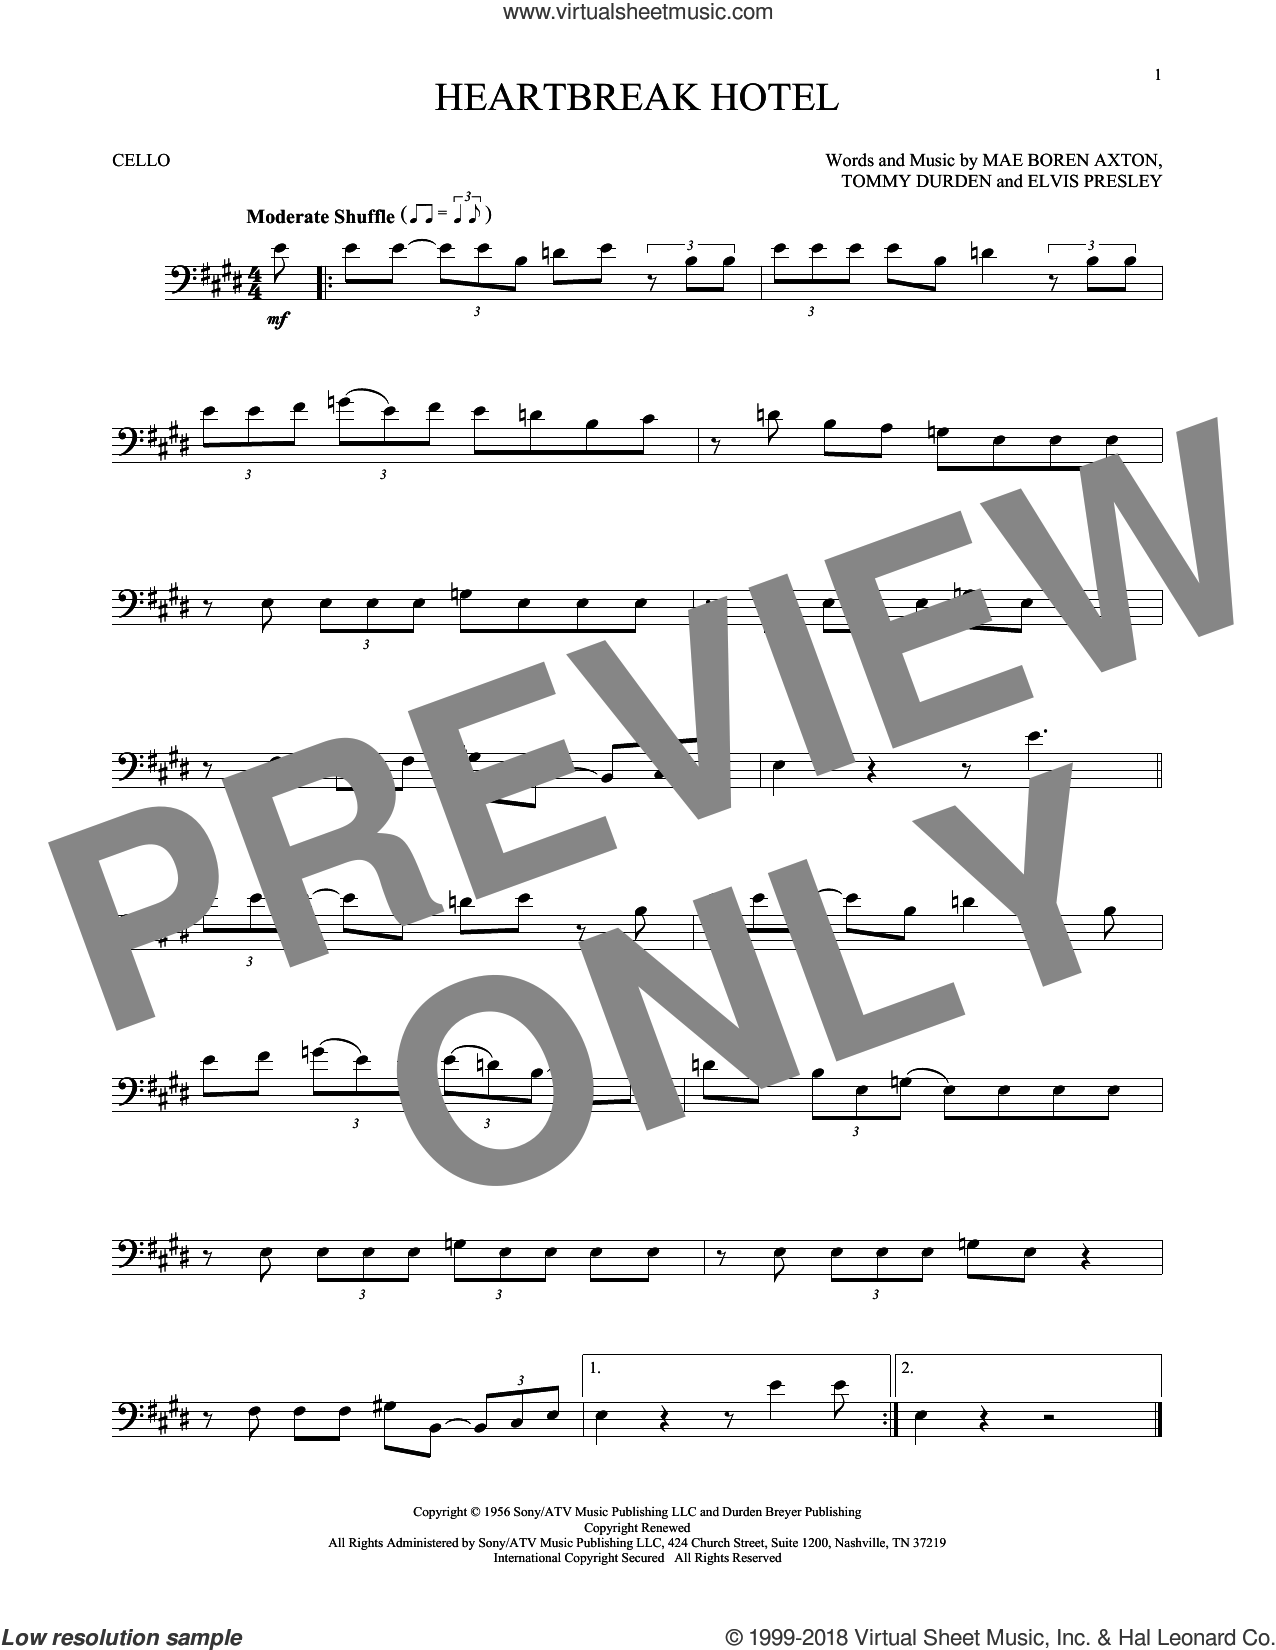 Heartbreak Hotel sheet music for cello solo by Elvis Presley, Mae Boren Axton and Tommy Durden, intermediate skill level